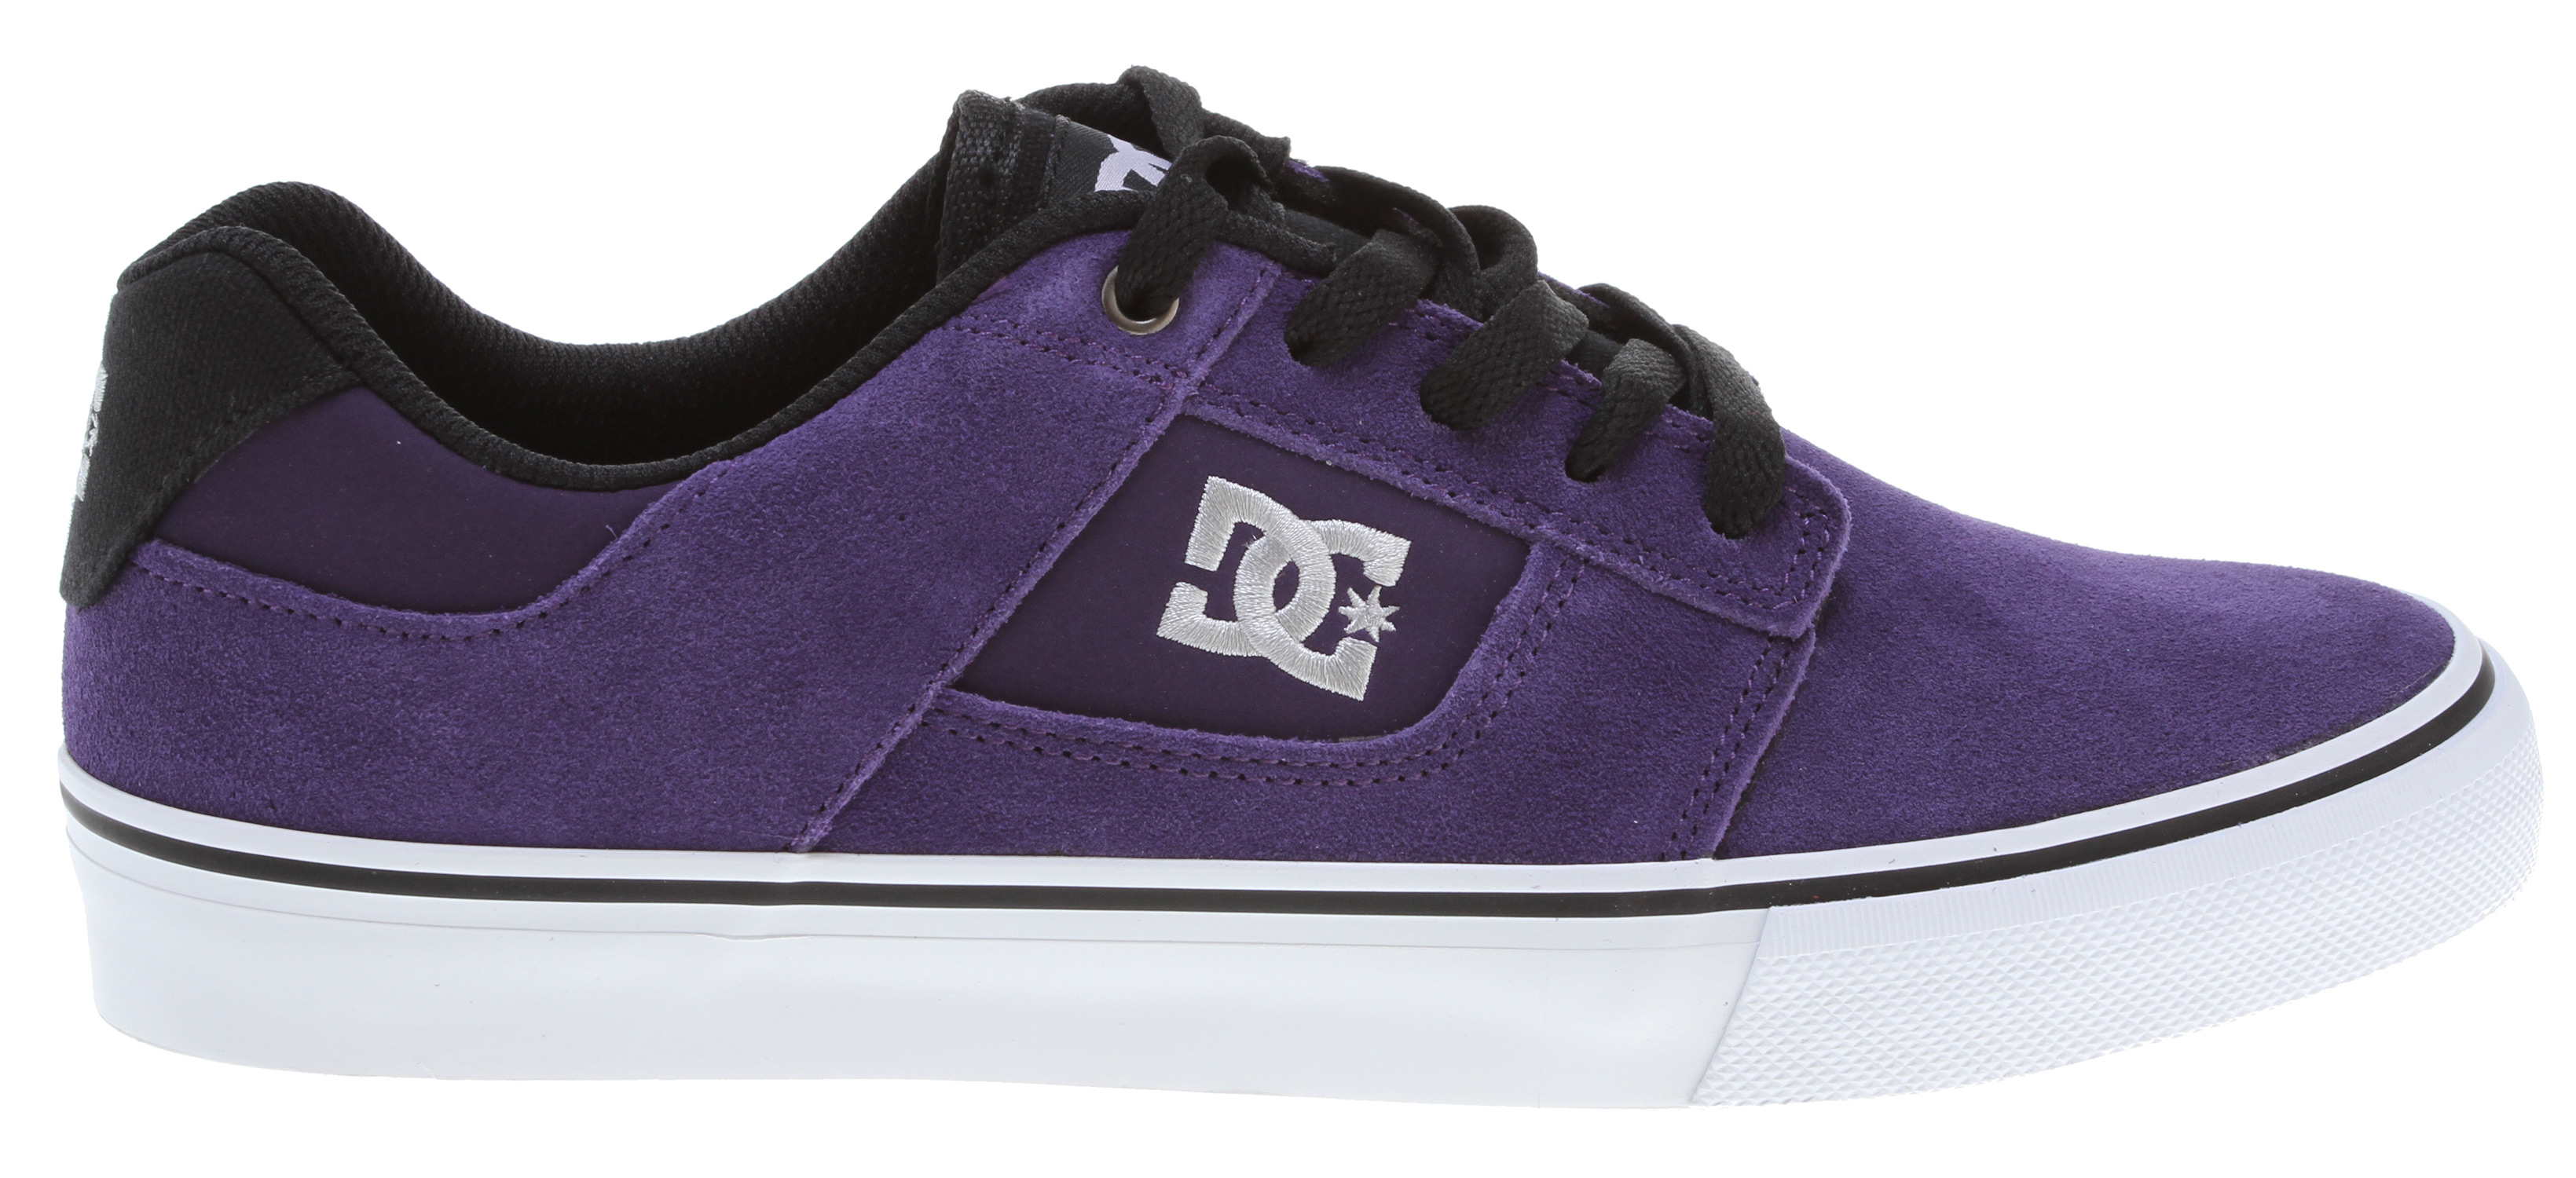 "Skateboard Keep it low pro in the Bridge. Its upper is either suede and synthetic nubuck or canvas, and it features an embroidered logo and metal lace eyelets. The sole uses vulcanized rubber construction for board feel and sole flex, while the outsole uses an abrasion-resistant sticky rubber.Key Features of the DC Bridge Shoes: Suede And Synthetic Nubuck Or Canvas Upper Embroidered Logo Metal Eyelet Vulcanized Construction For Great Board Feel And Sole Flex Abrasion-Resistant Sticky Rubber Outsole DC's Trademarked ""Pill Pattern"" Recessed Tread - $38.95"